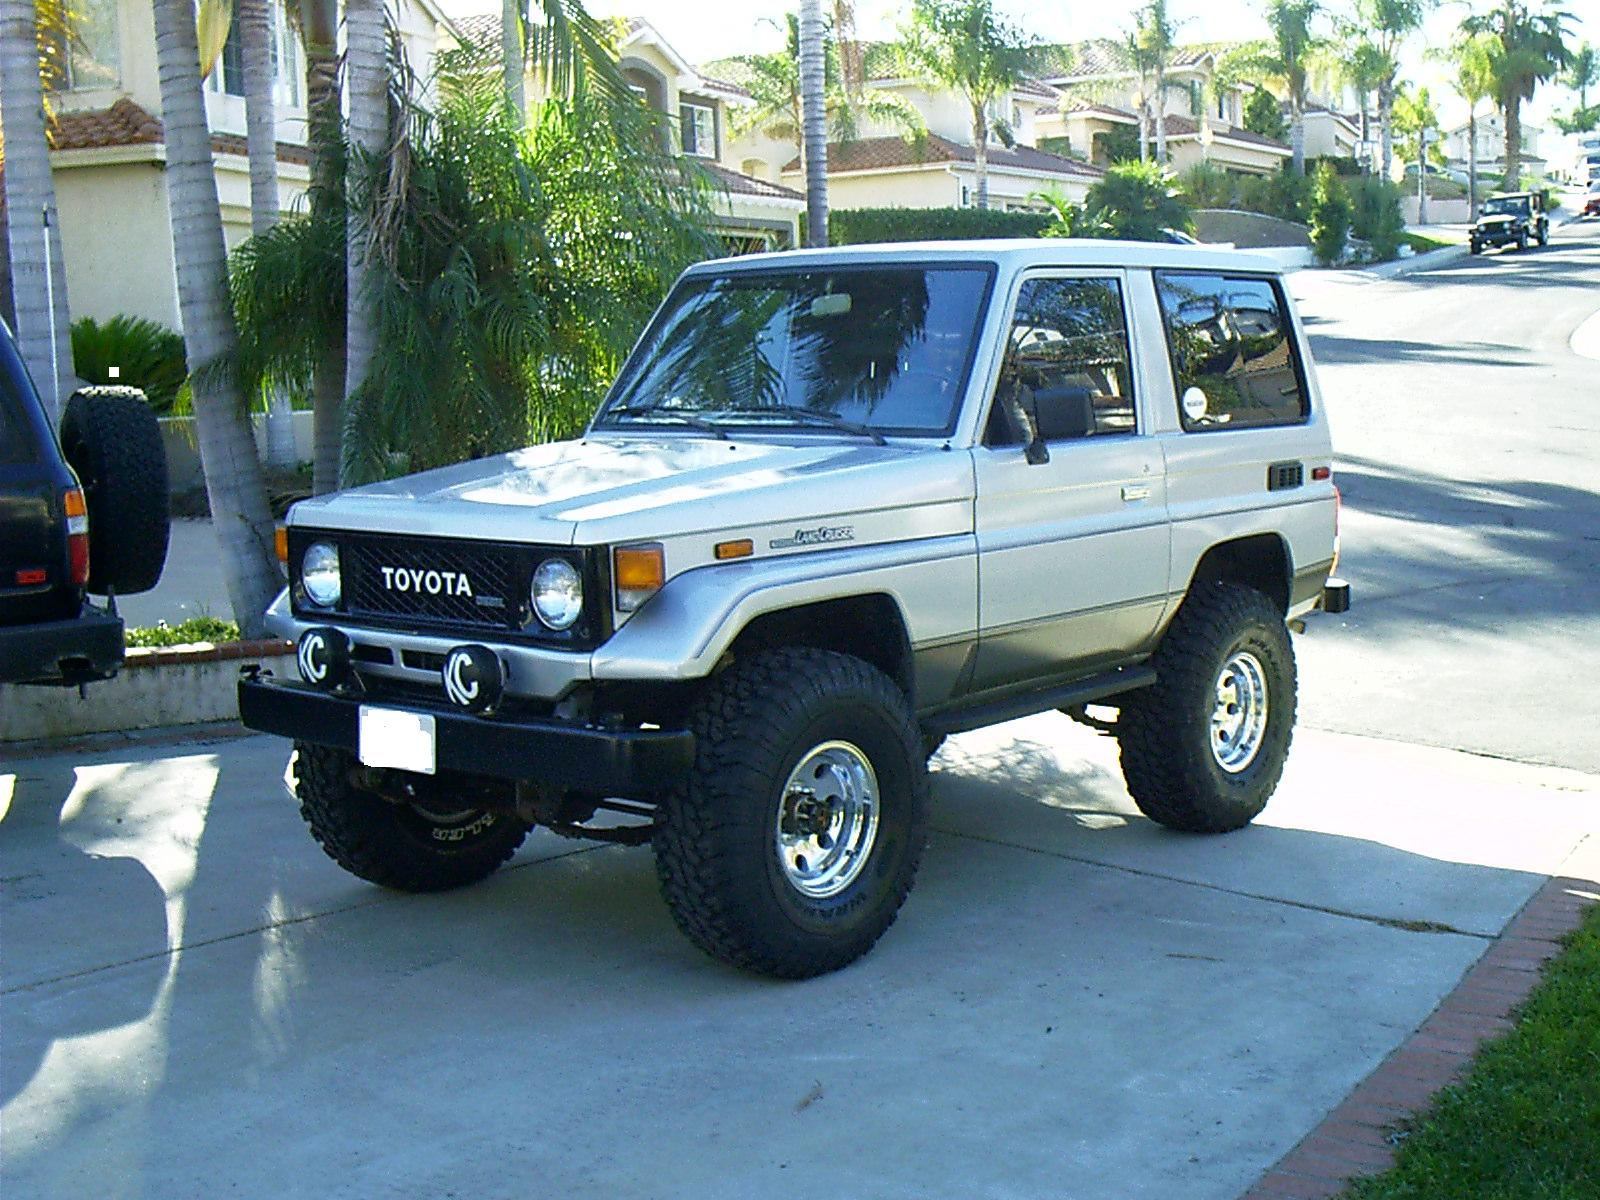 1976 Toyota Land Cruiser on 1987 Toyota Land Cruiser   Pictures   1987 Toyota Land Cruiser Pictu